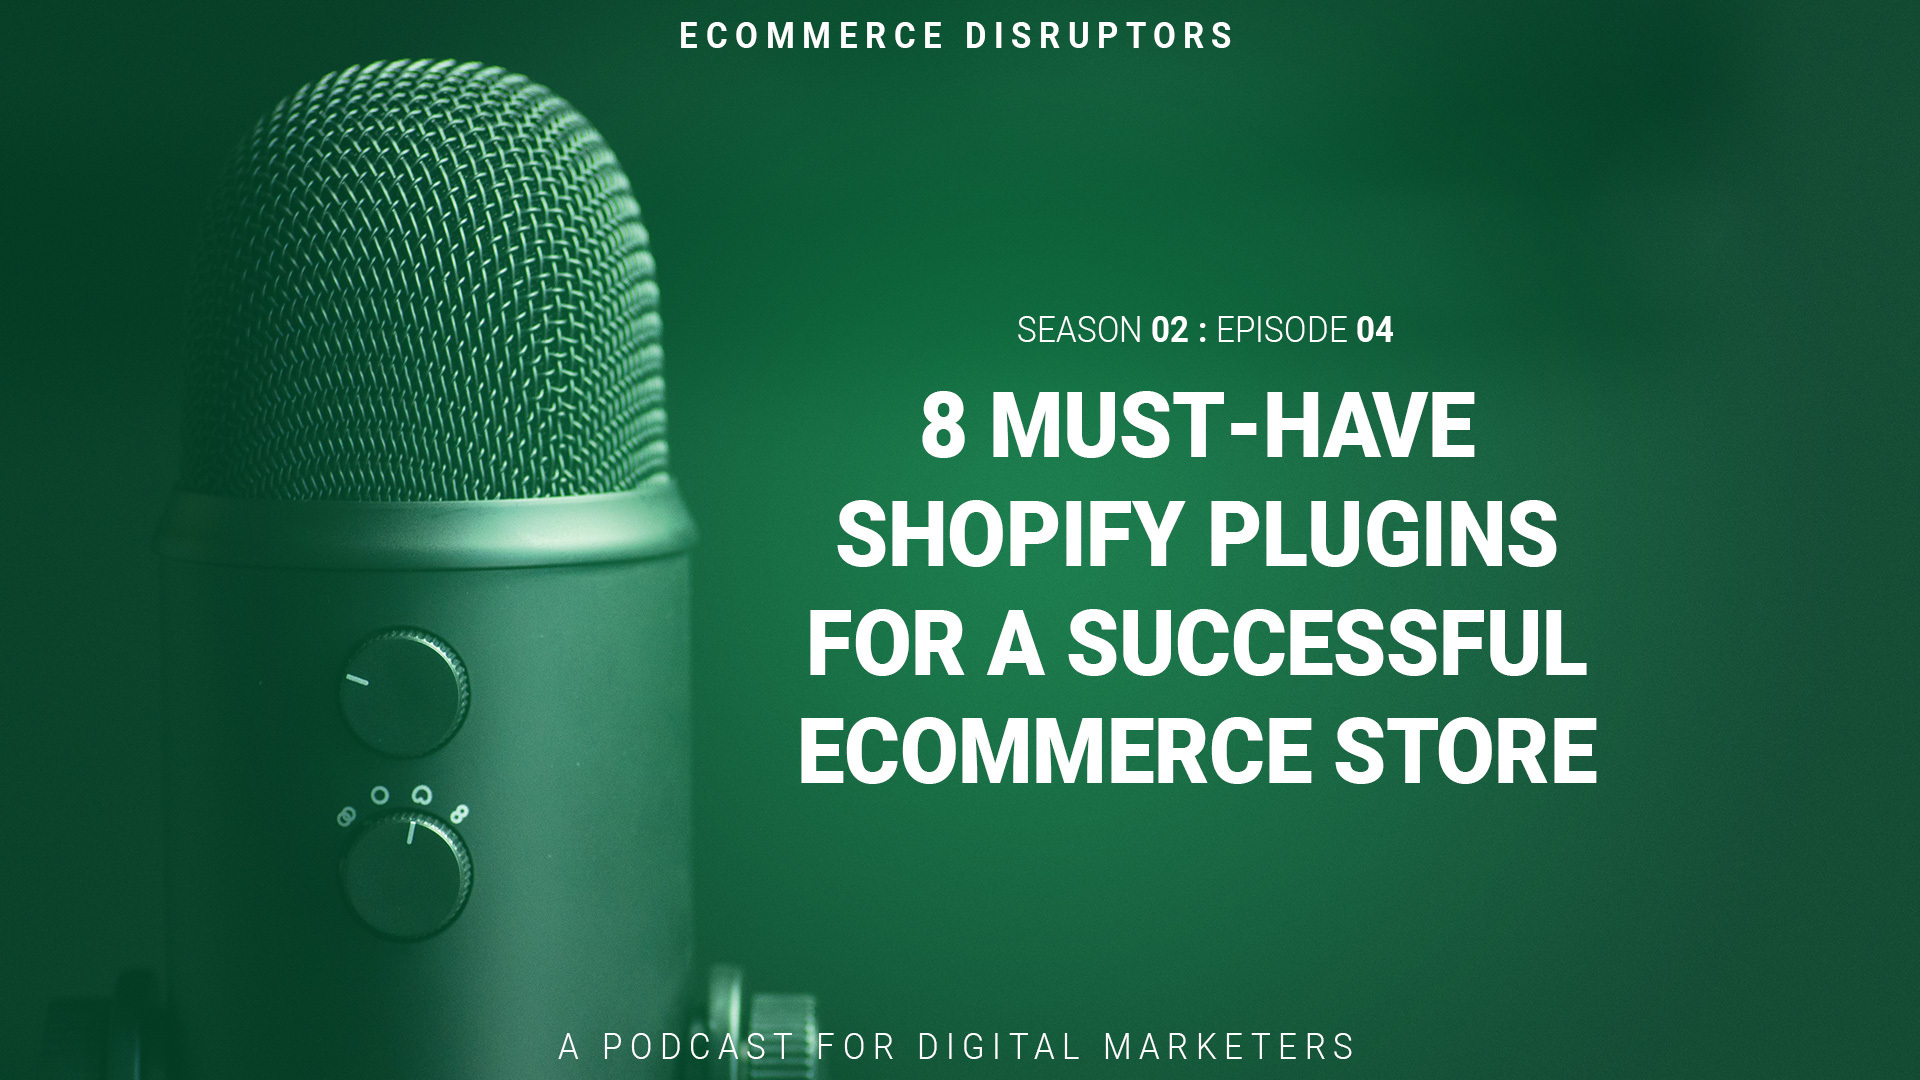 8 of the Best Shopify Apps for A Successful Ecommerce Business